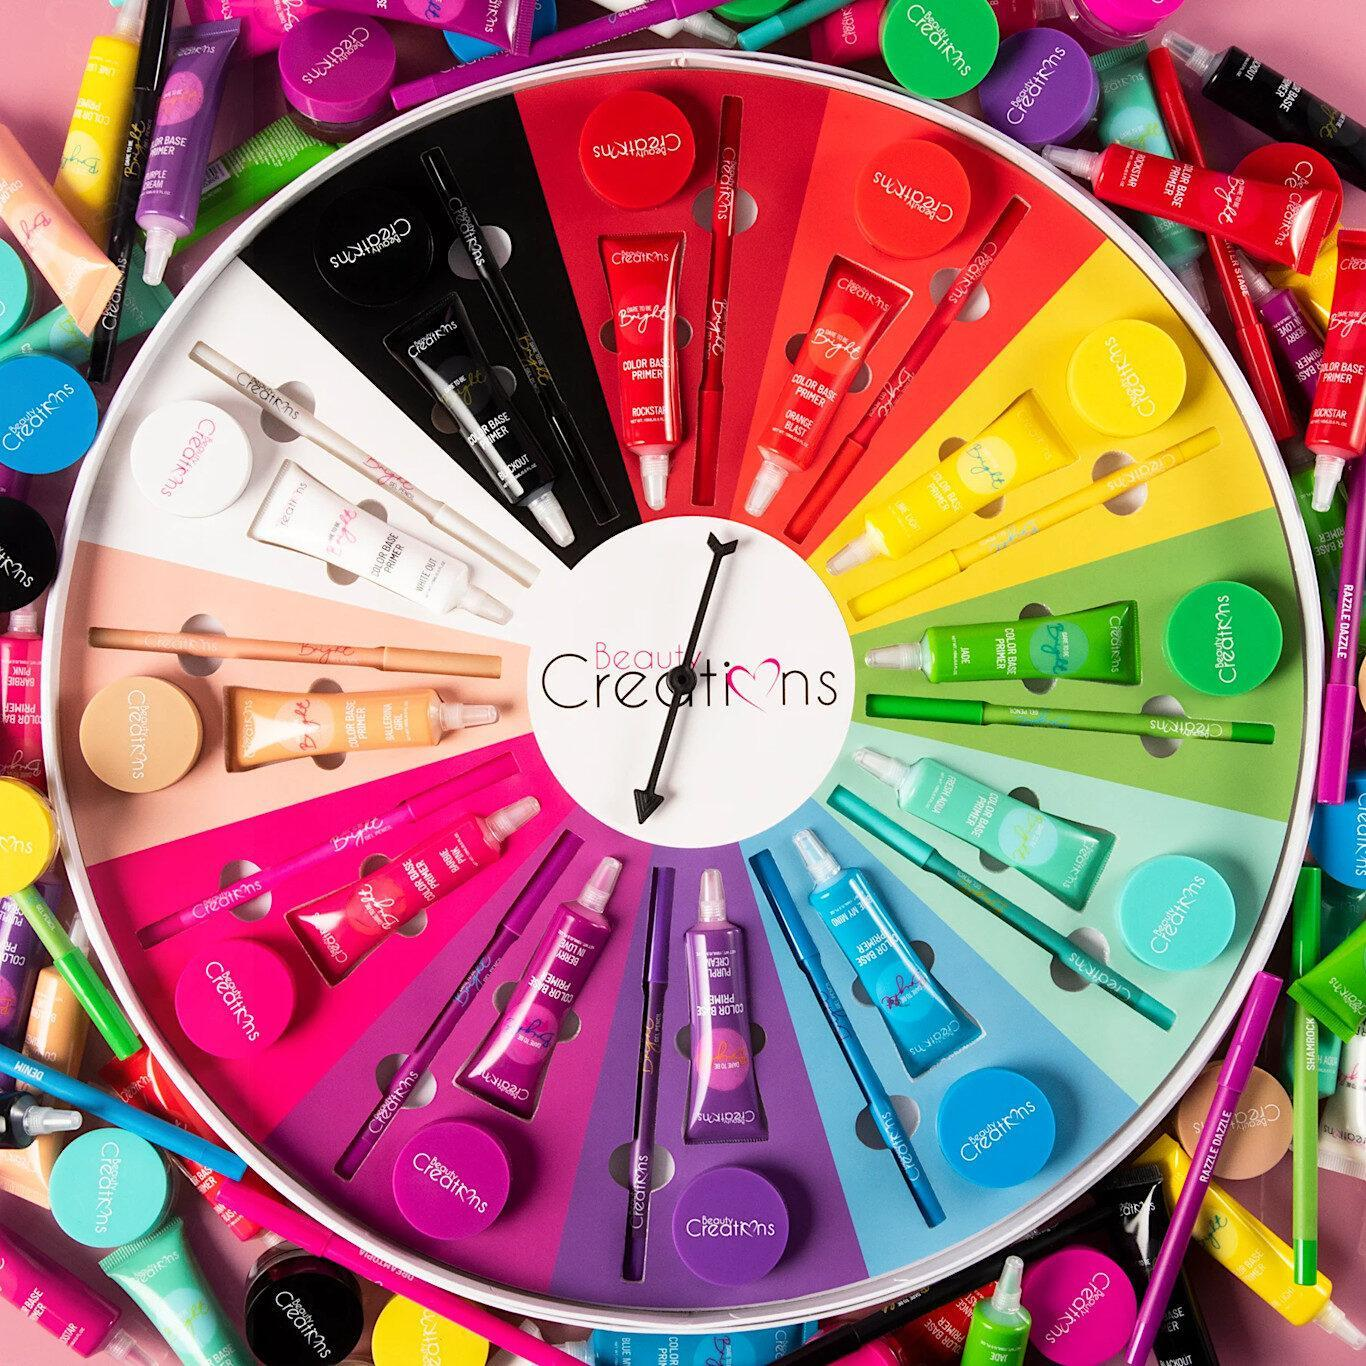 Beauty Creations Cosmetics Dare To Be Bright 2 Collection Dare to Be Bright Color Wheel PR Promo